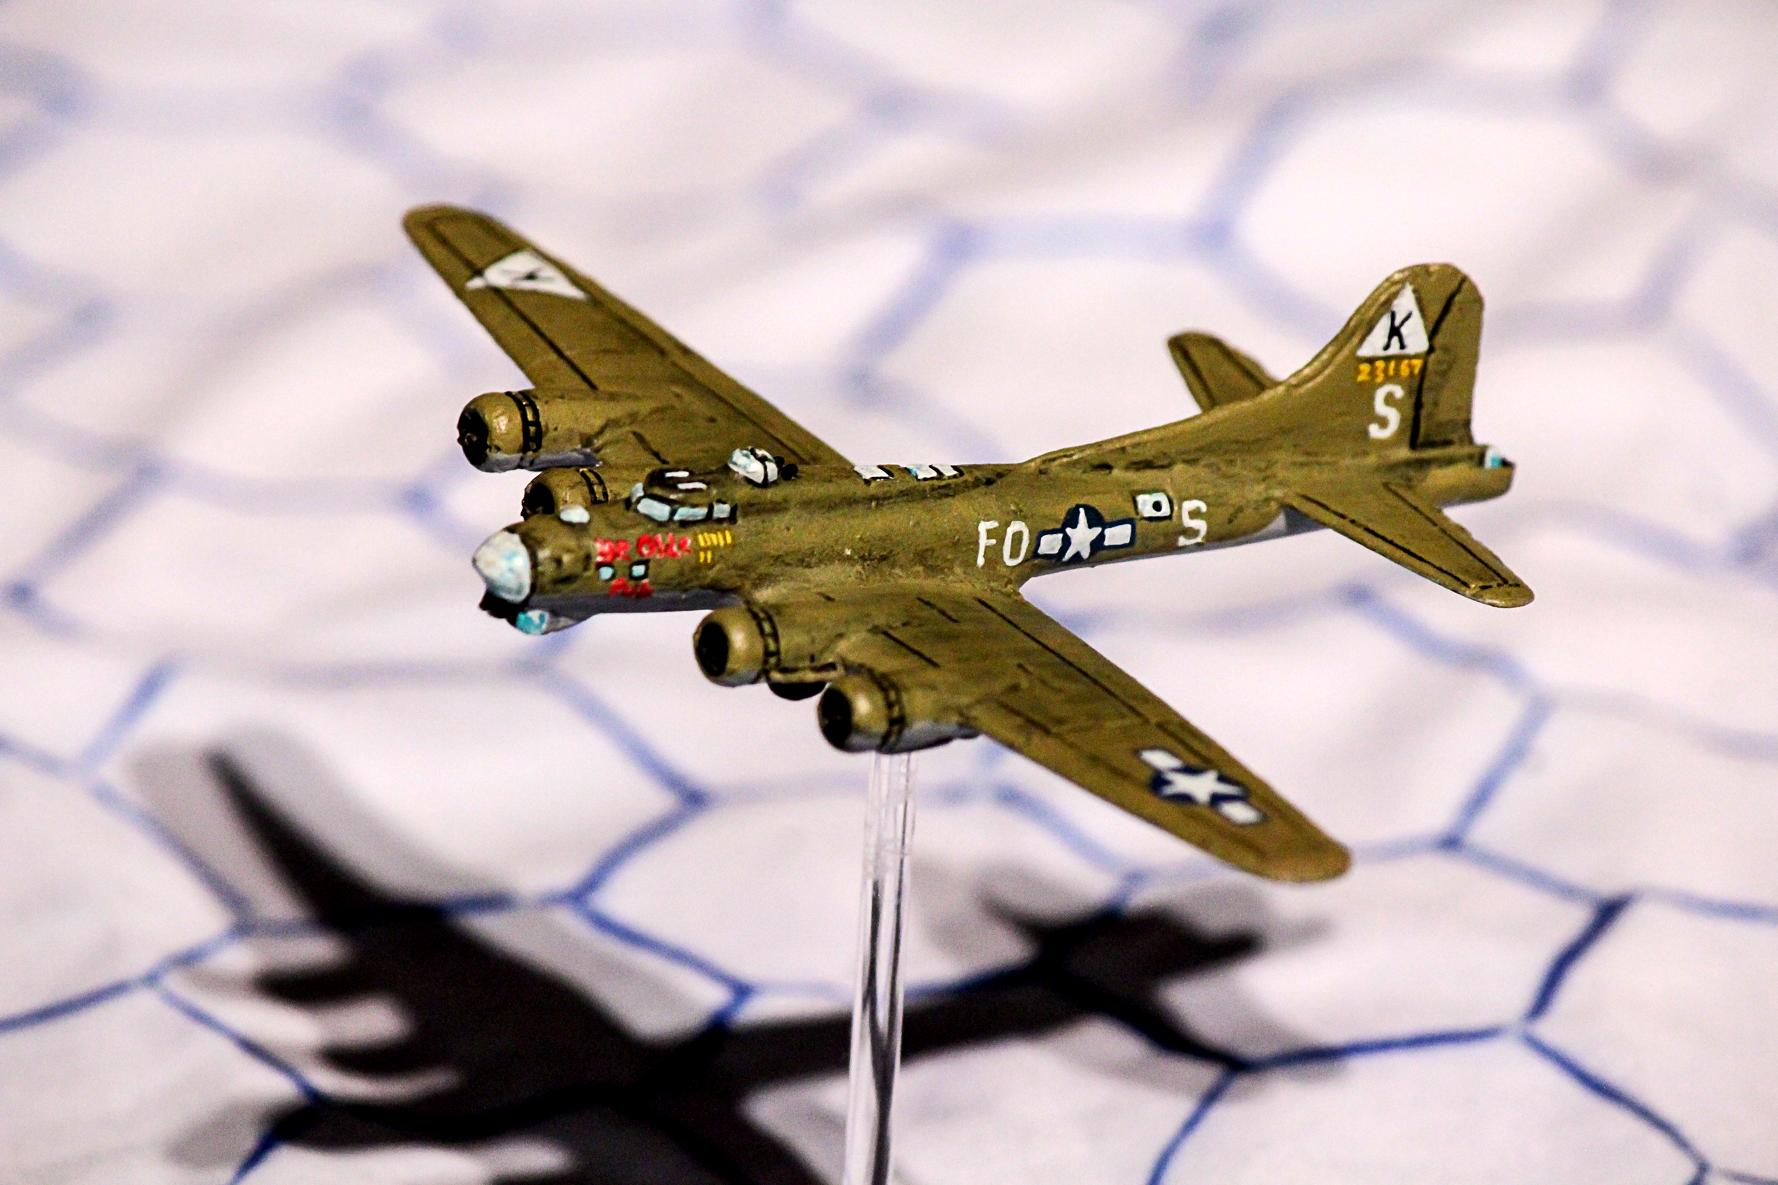 1:300, 1:300 Scale, 6mm, 6mm Scale, Air Combat, Airborne, Aircraft, Airplane, America, Aviation, B-17, Bomber, Check Your 6!, Fliers, Flying Fortress, Heavy Bomber, Historical, Usaaf, World War 2